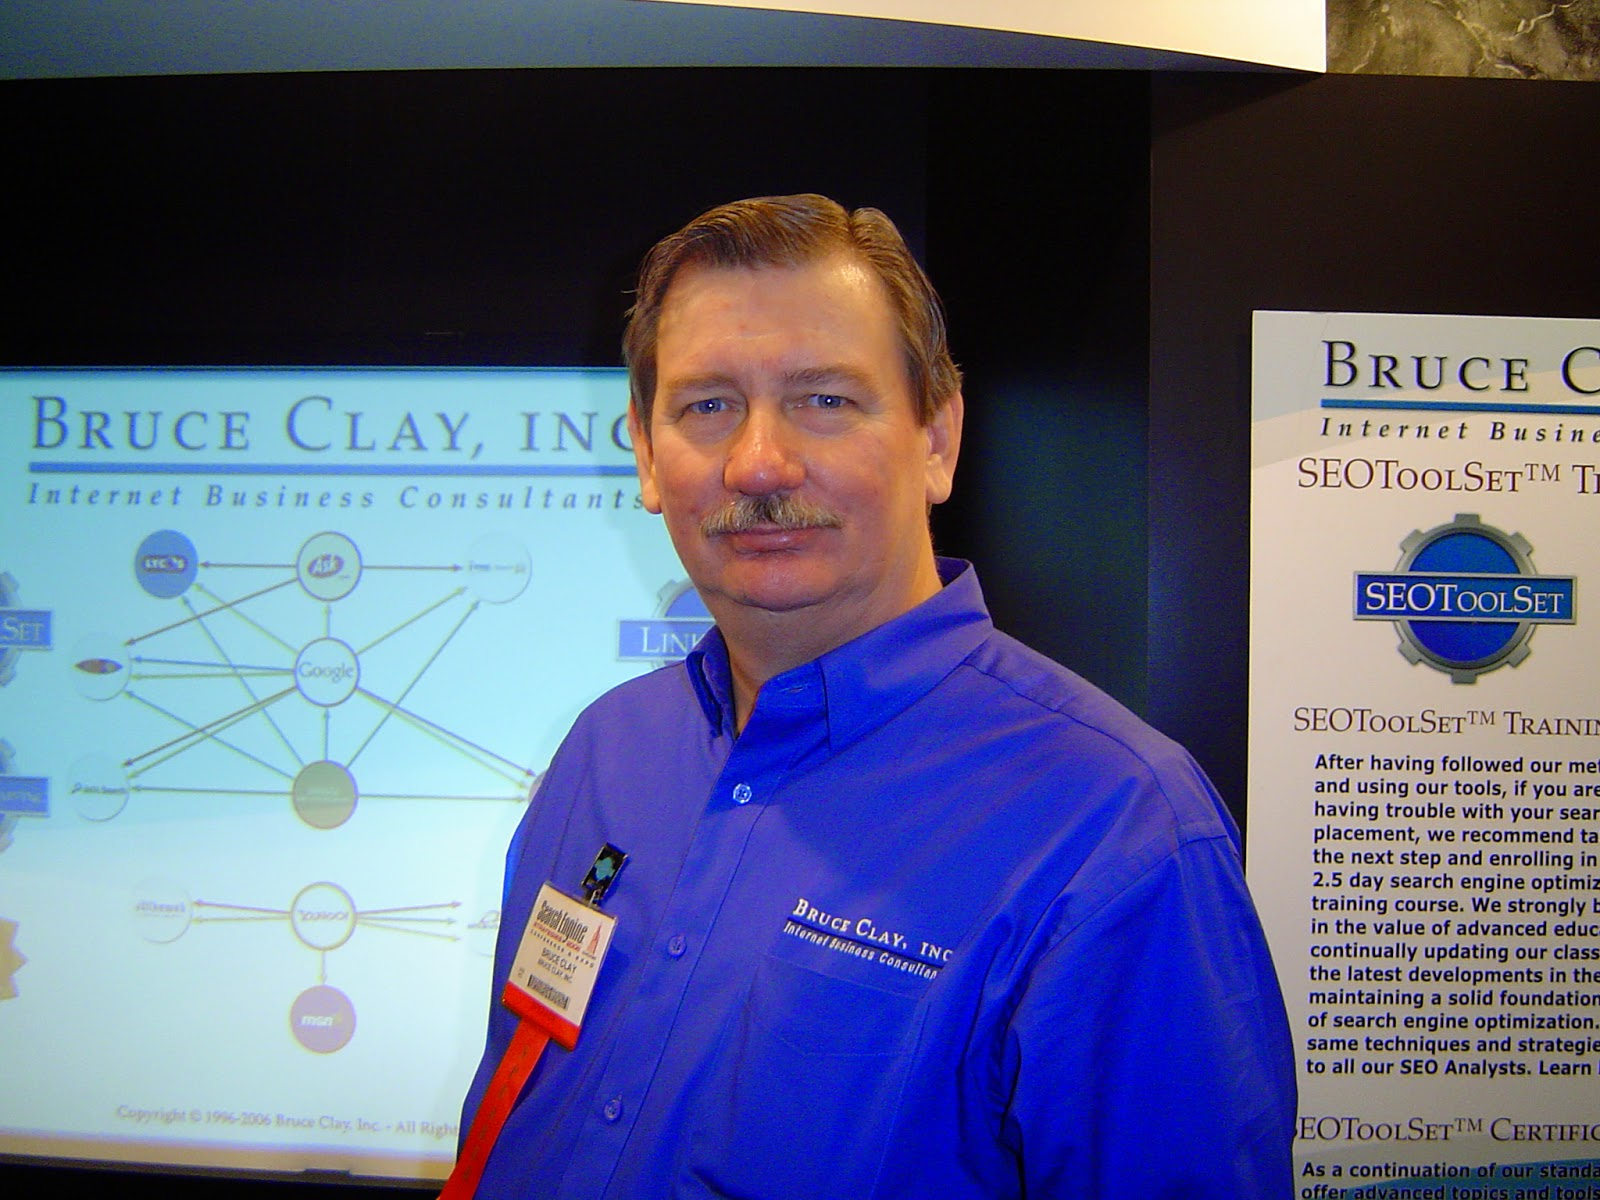 Bruce Clay standing in front of a presentation made by his company:  Bruce Clay, Inc.